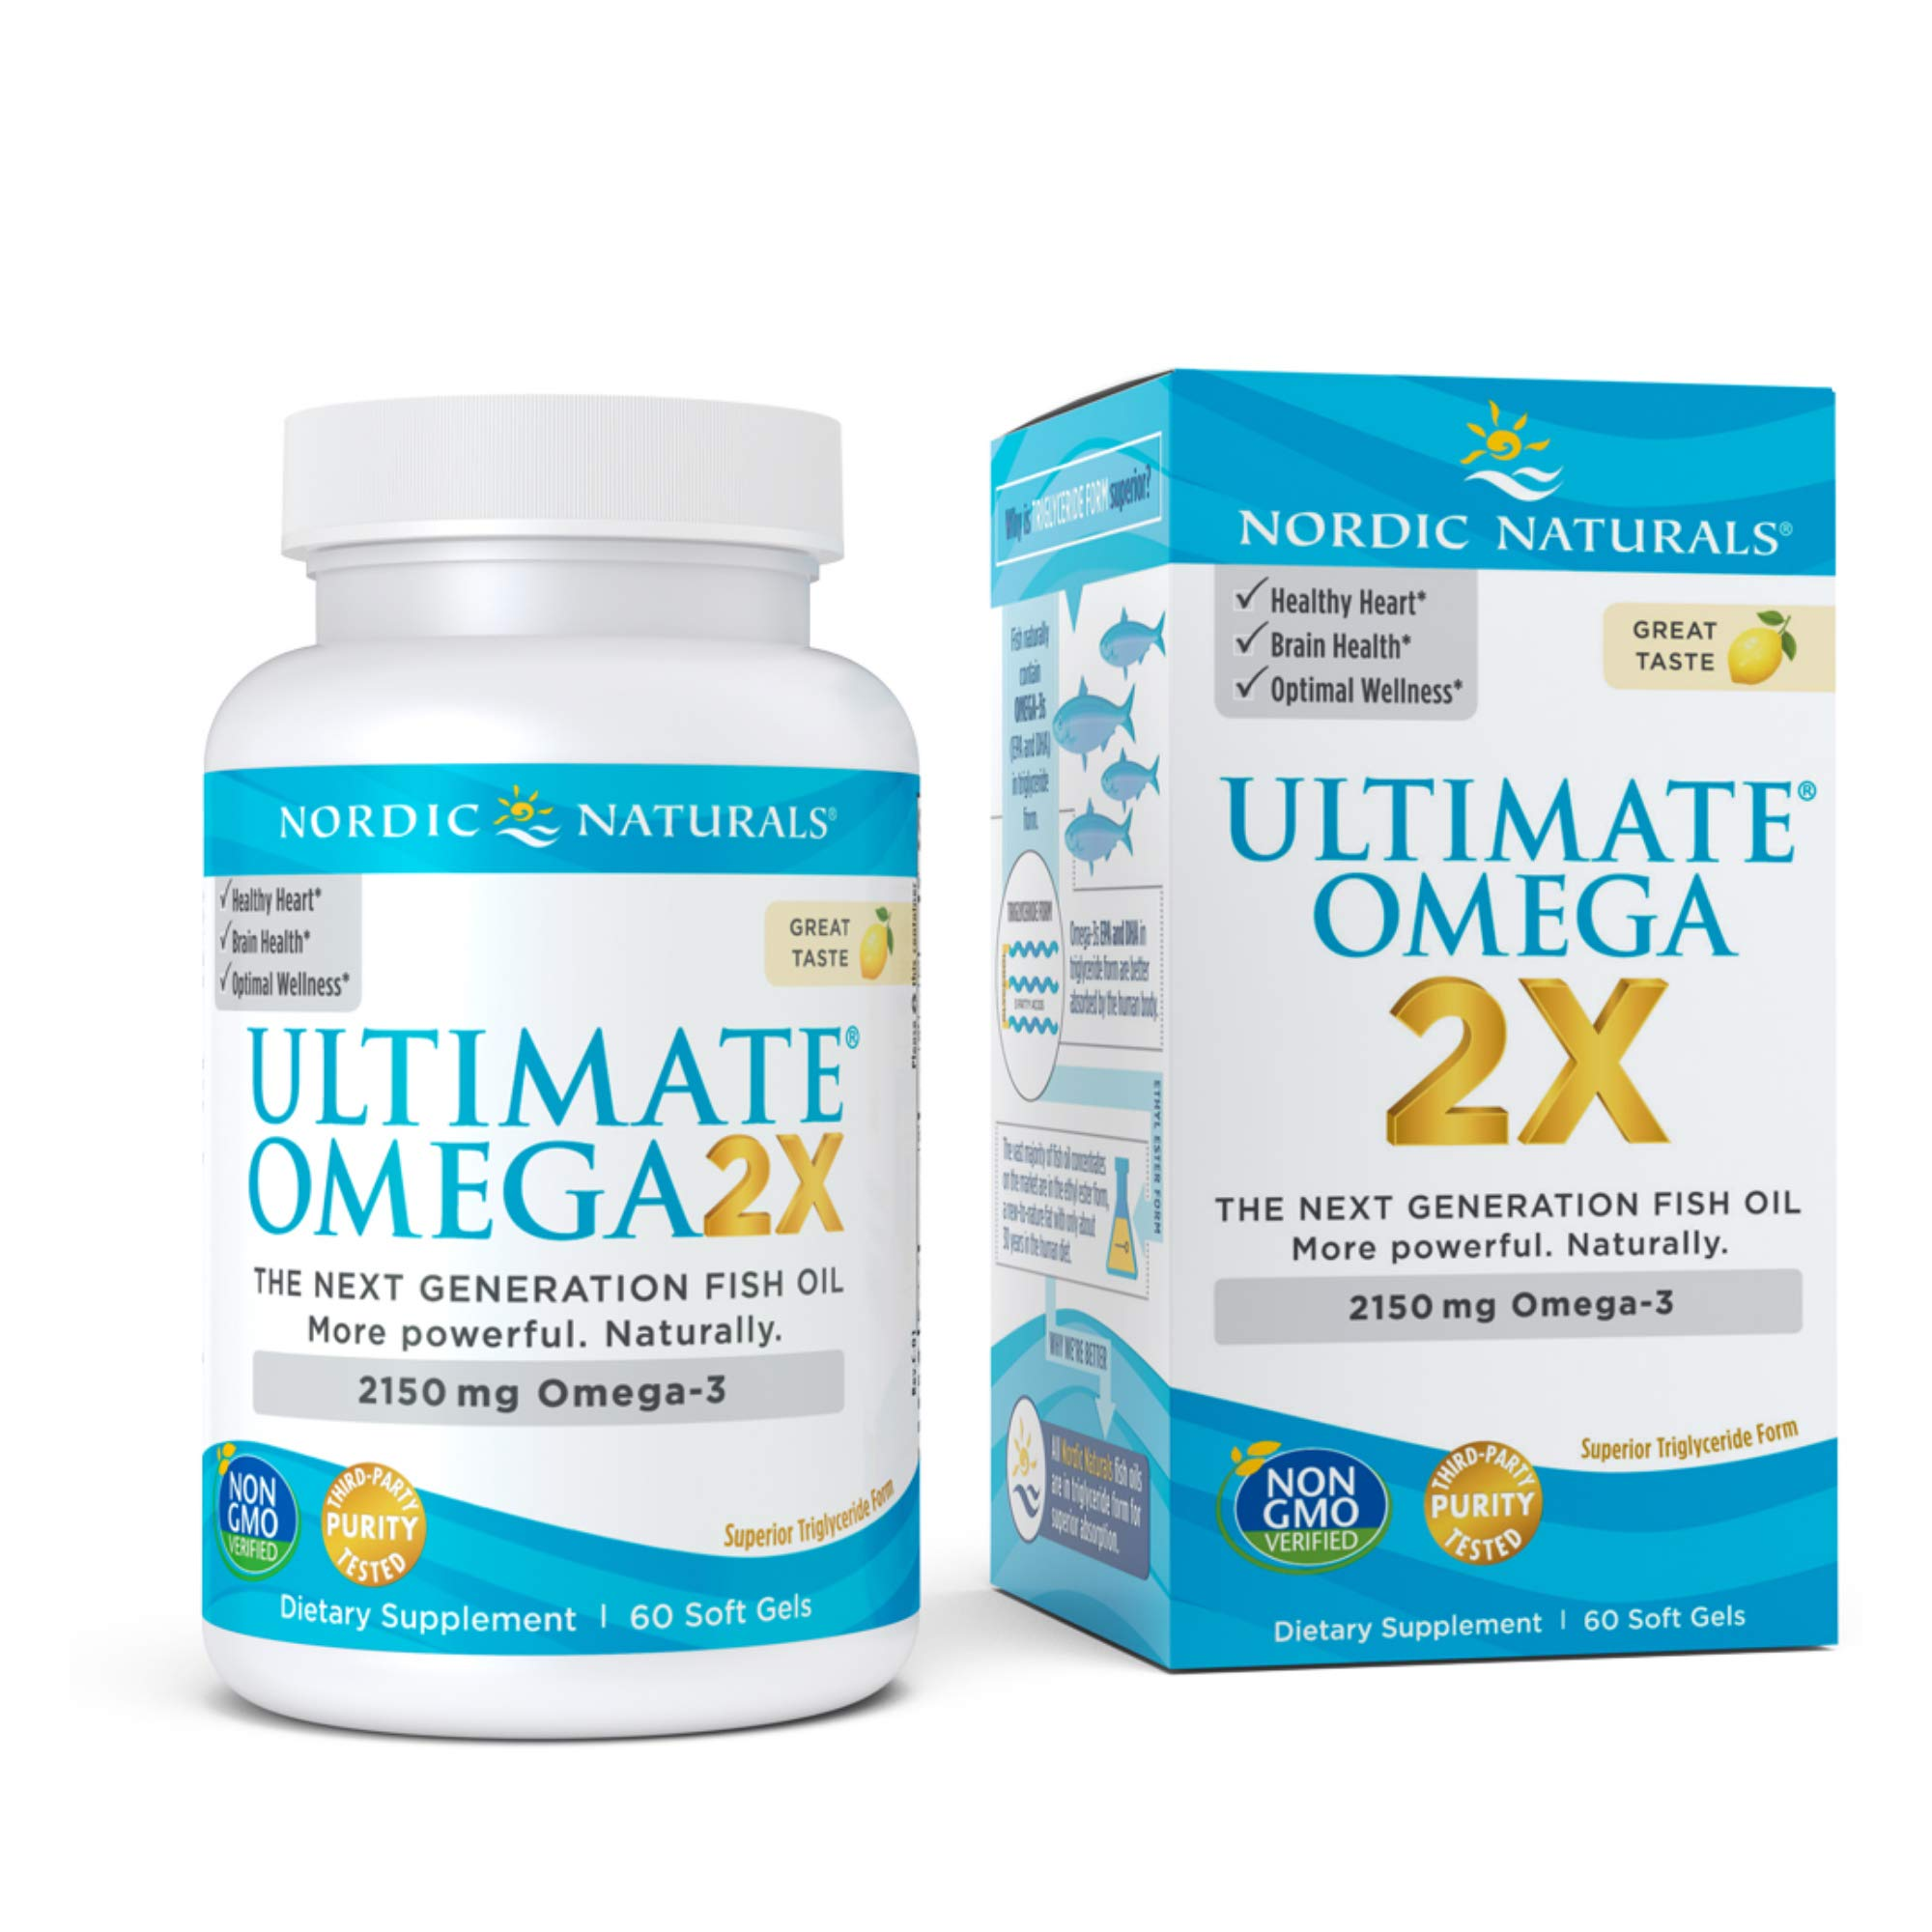 Nordic Naturals Ultimate Omega 2X, Lemon Flavor - 2150 mg Omega-3-60 Soft Gels - High-Potency Omega-3 Fish Oil with EPA & DHA - Promotes Brain & Heart Health - Non-GMO - 30 Servings